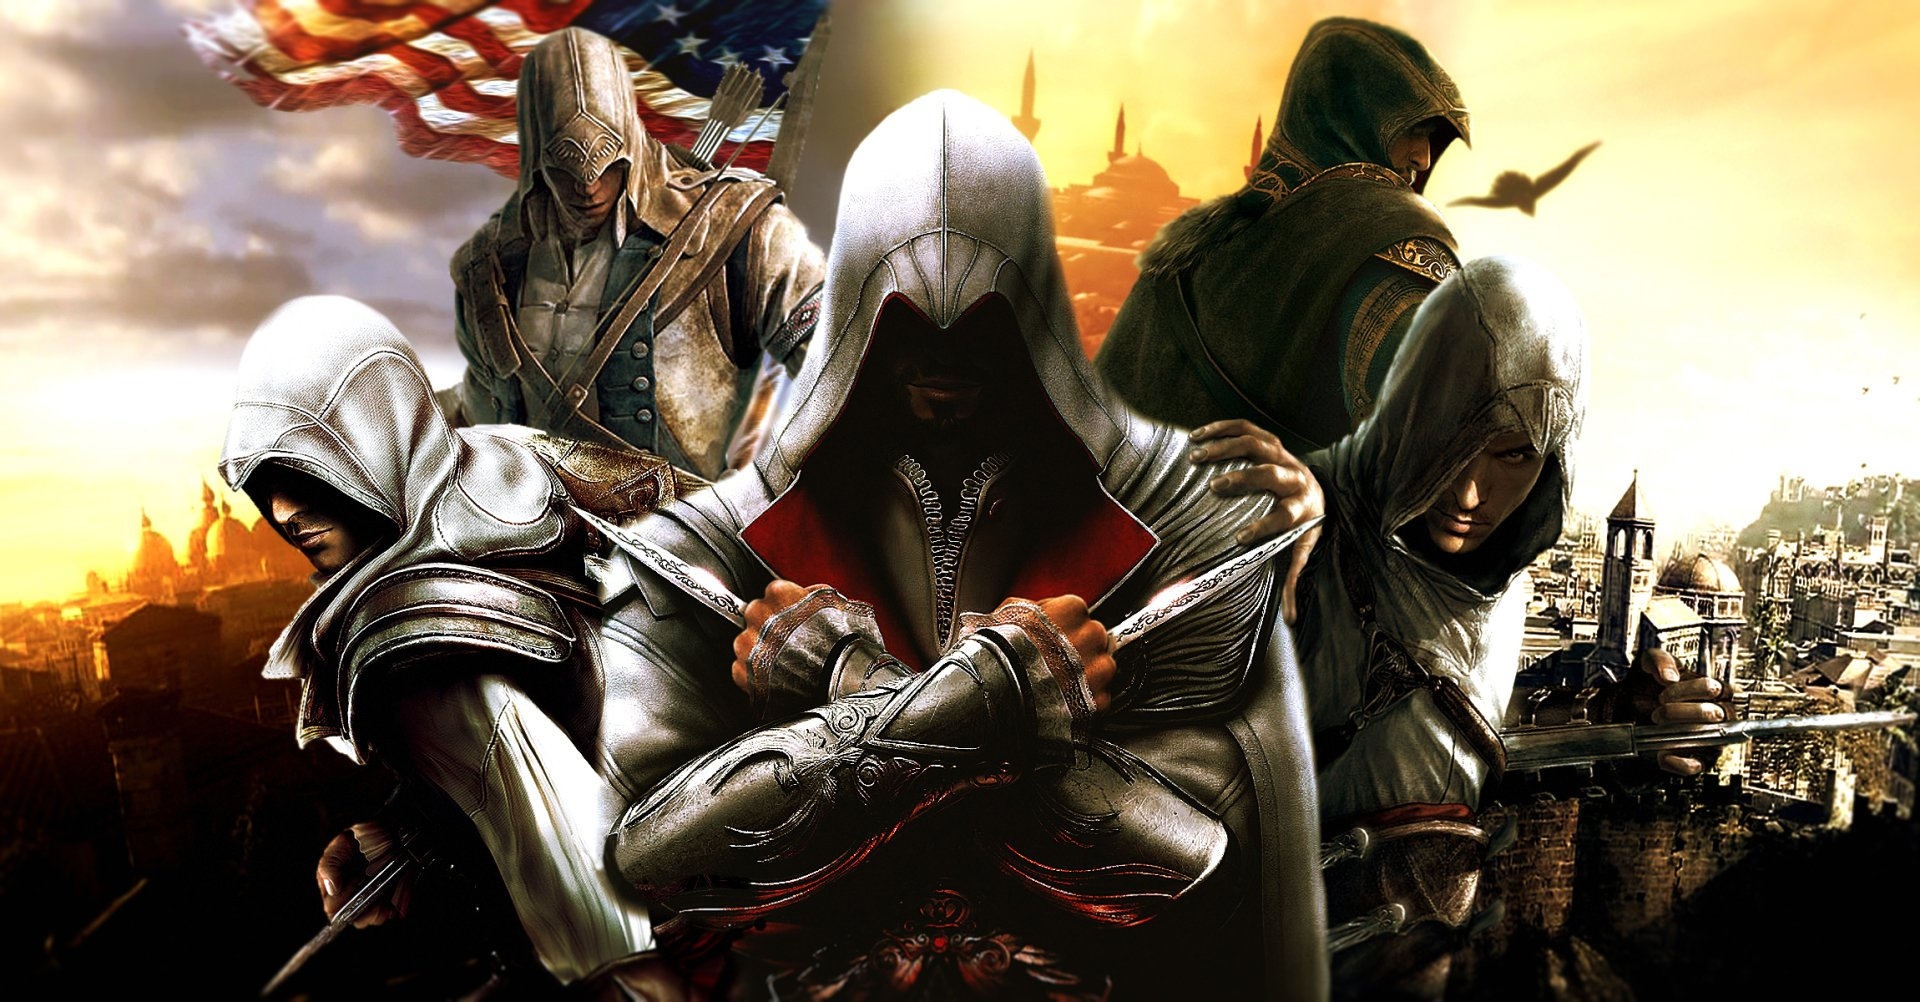 Video Game - Assassin's Creed  Ezio (Assassin's Creed) Altair (Assassin's Creed) Conor Wallpaper